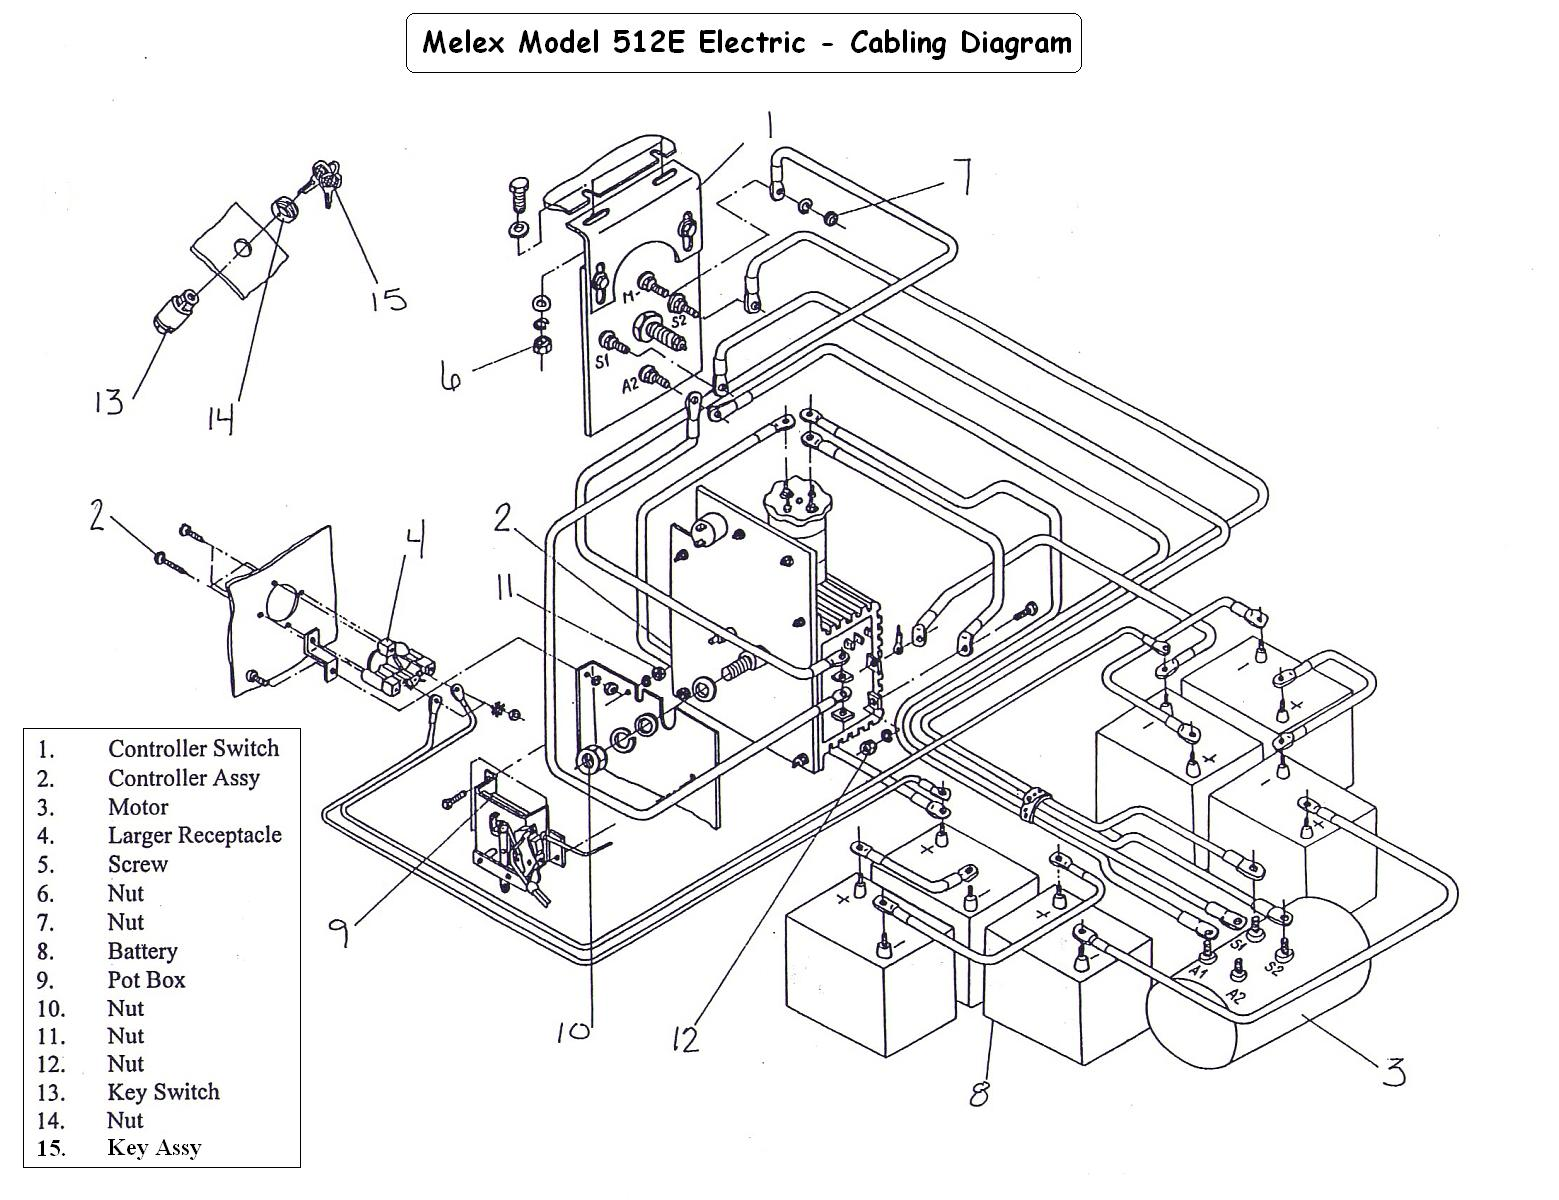 Wiring Diagram For Melex 512 Golf Cart Schematic Diagrams Yamaha Golf Cart Battery  Diagram Melex 212 Wiring Diagram